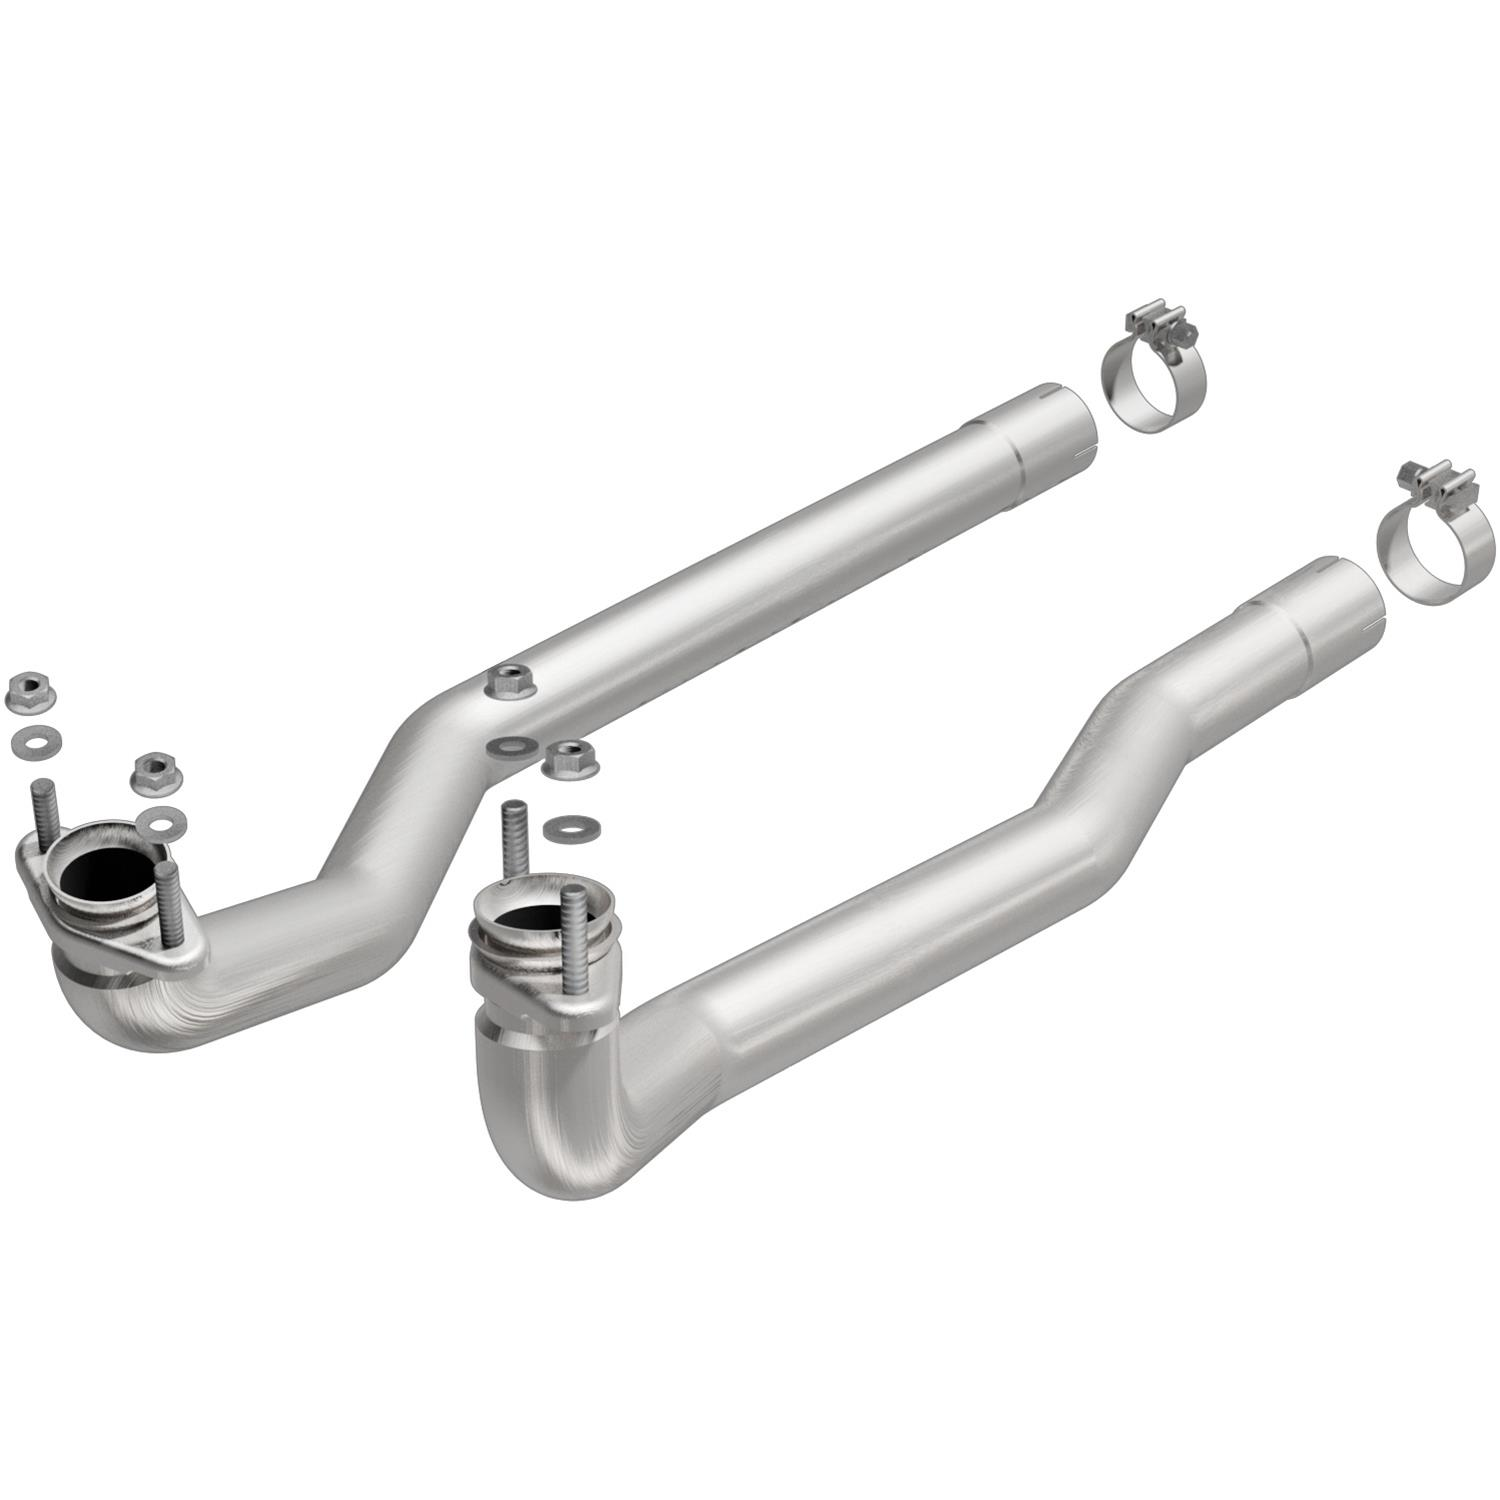 Magnaflow Exhaust Manifold Pipe Exhaust Pipe 19304